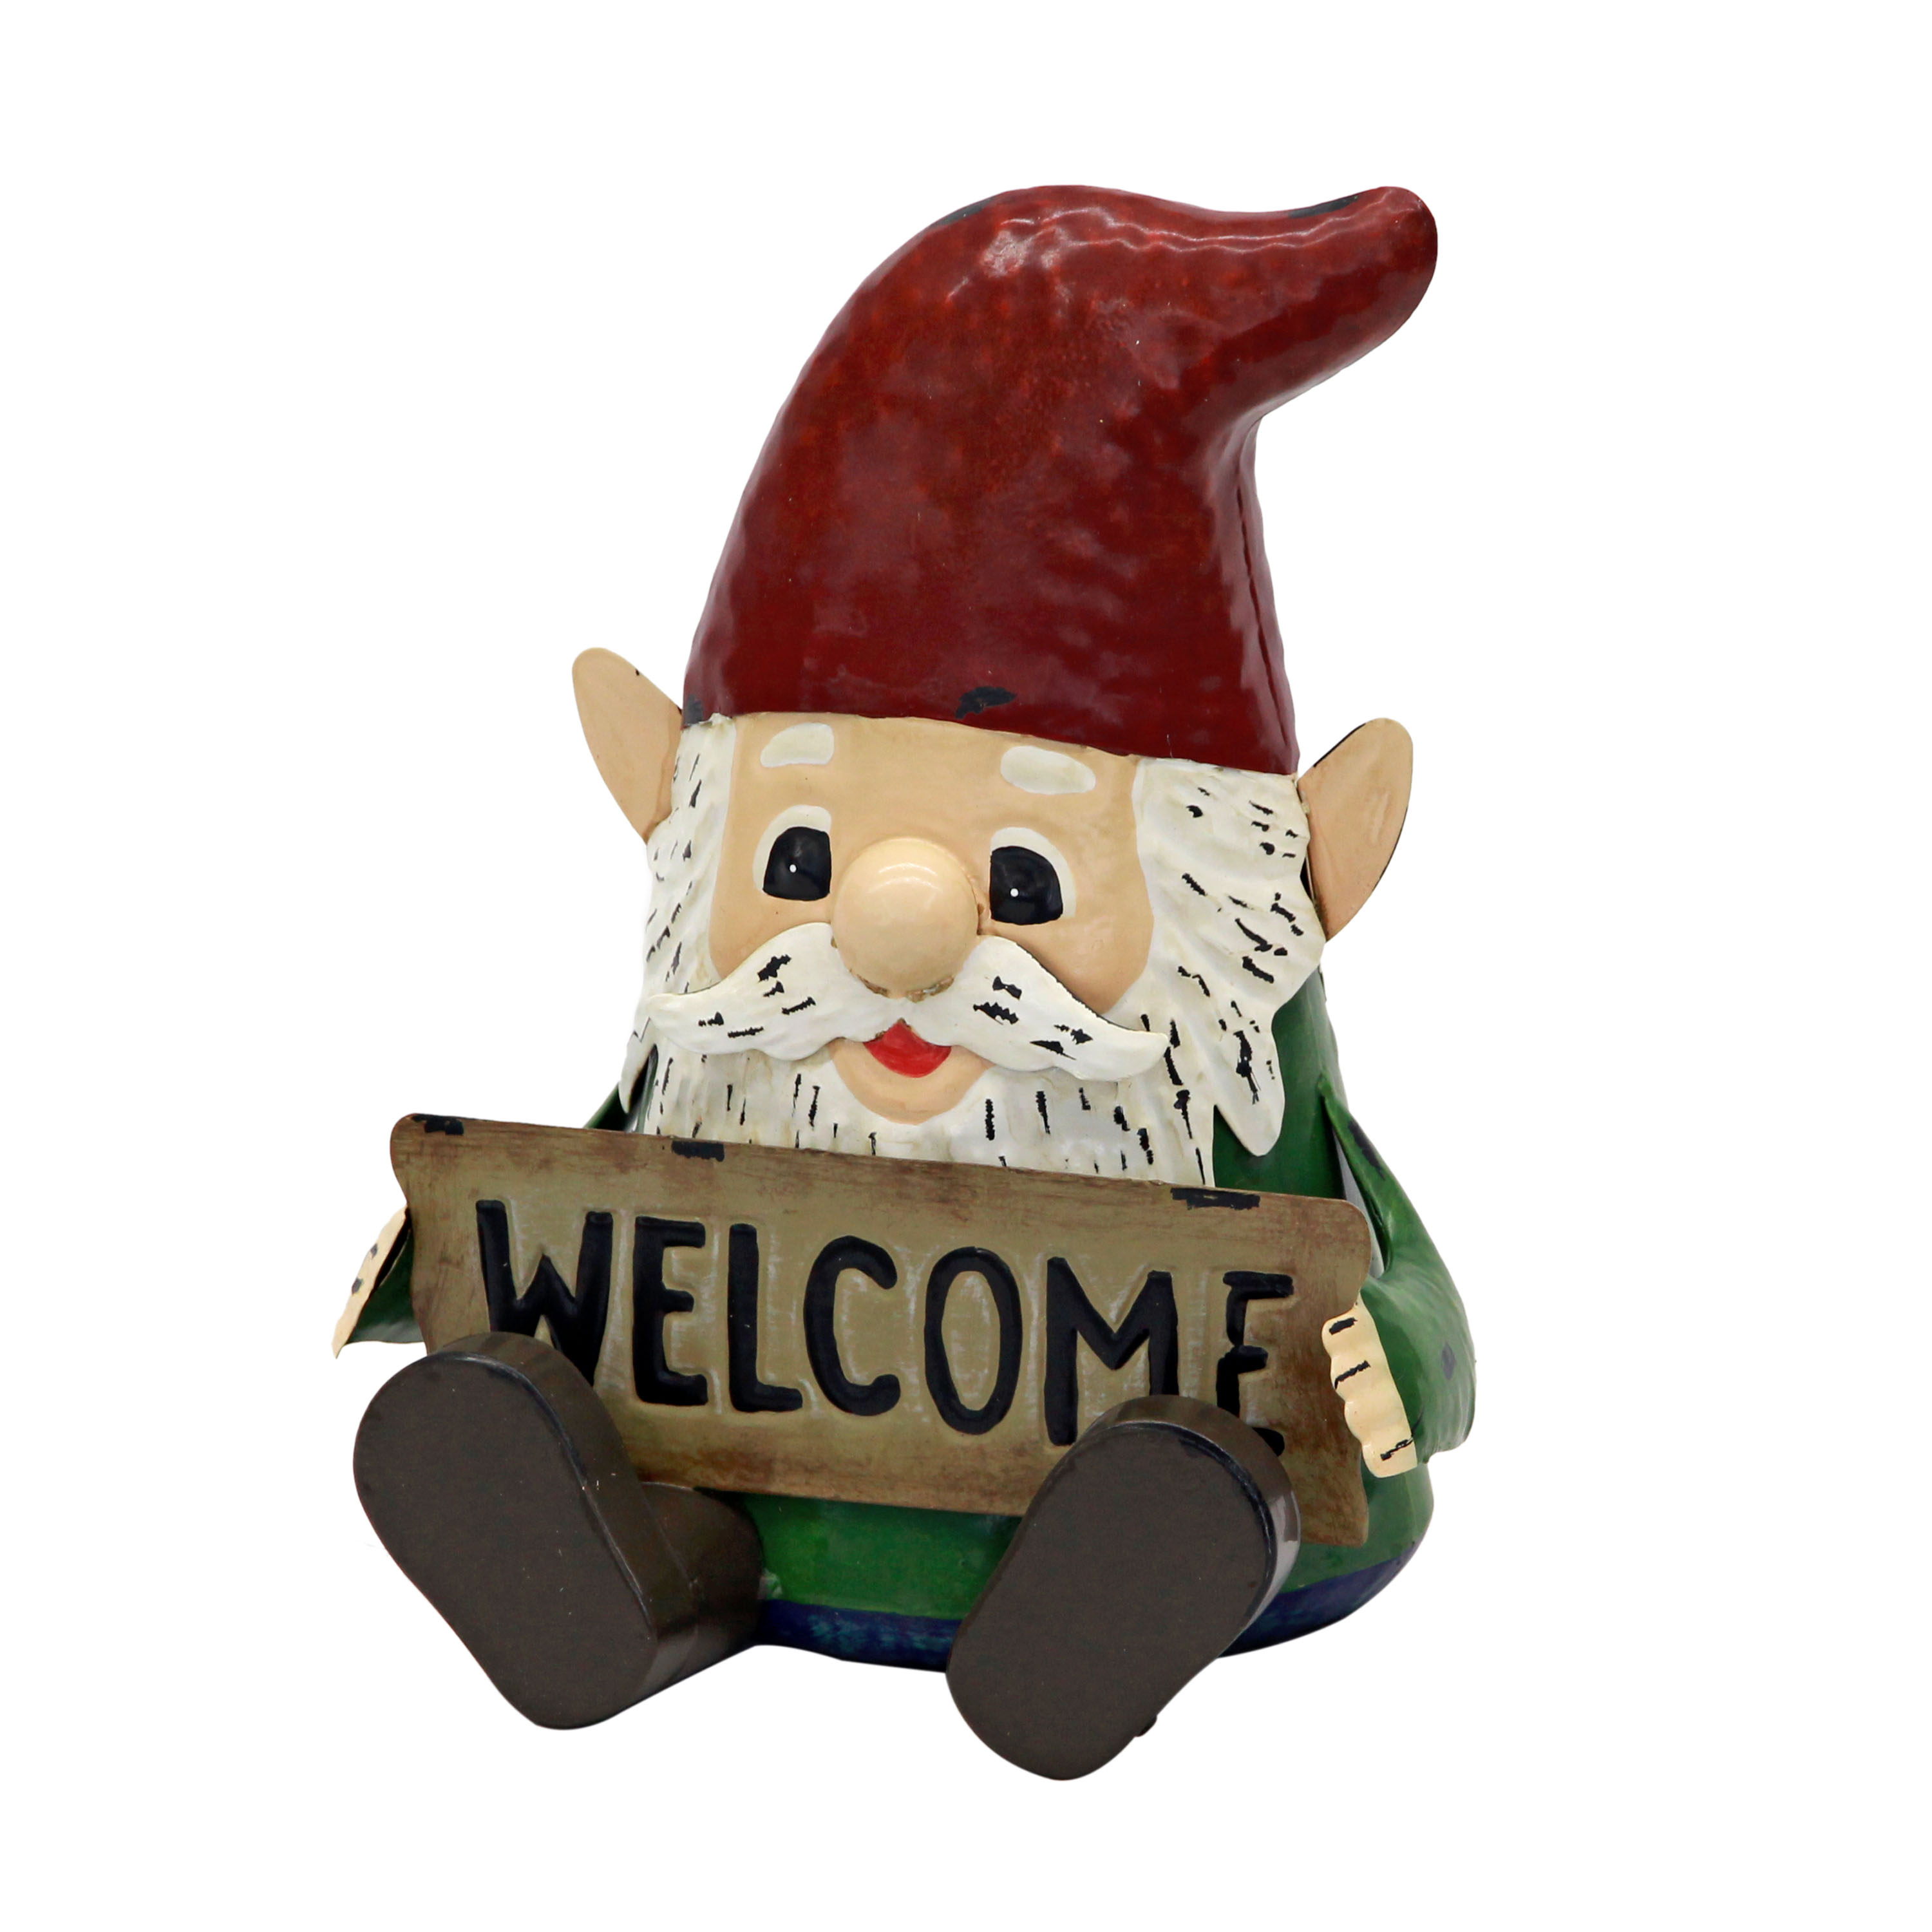 Mainstays Outdoor Metal Welcome Gnome Statuary